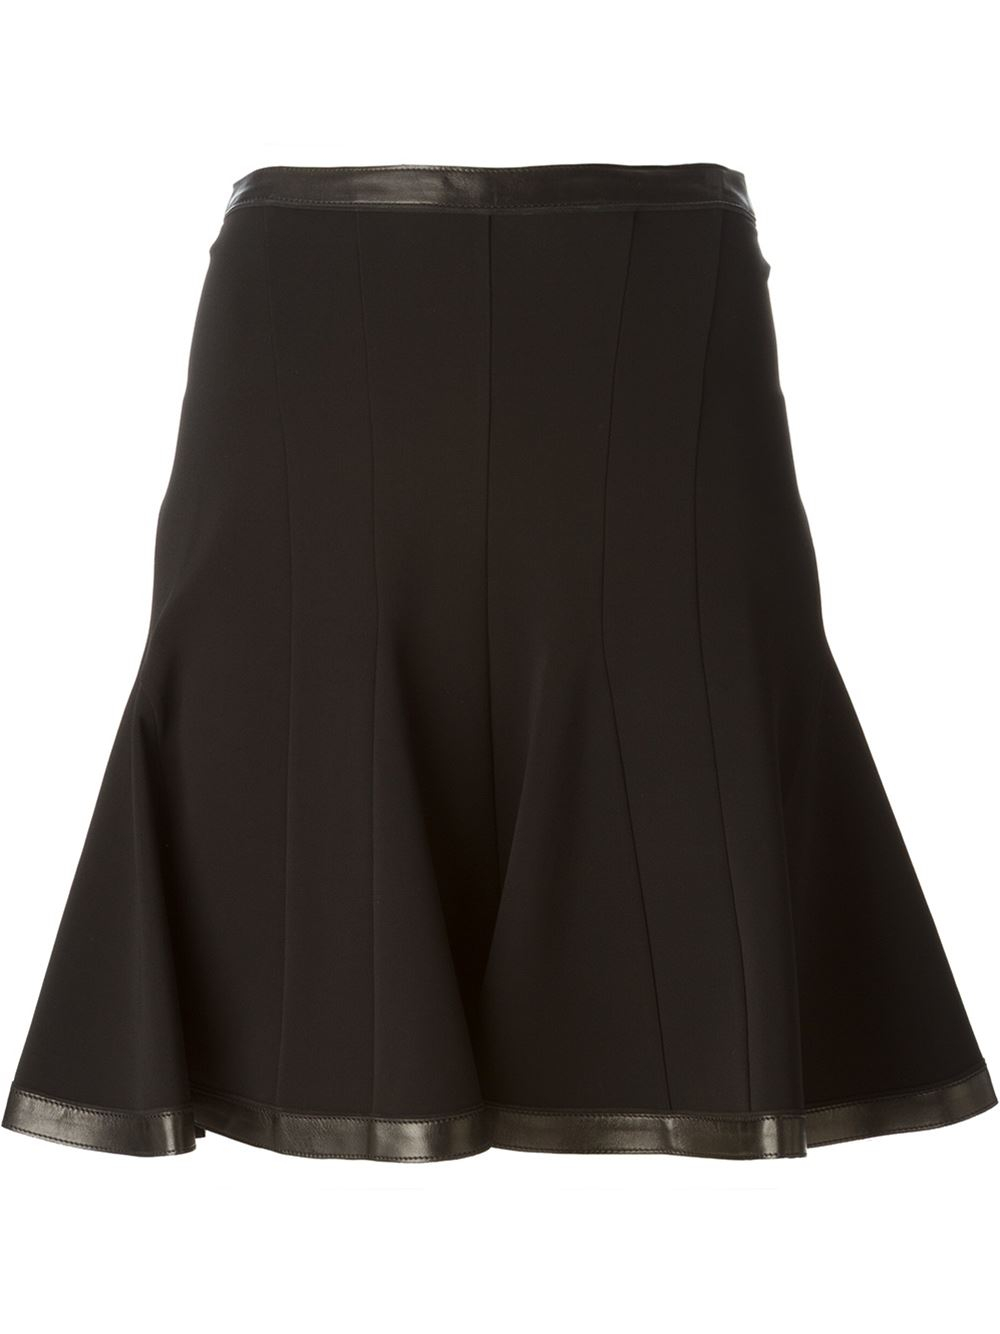 roberto cavalli leather trimmed flared skirt in black lyst